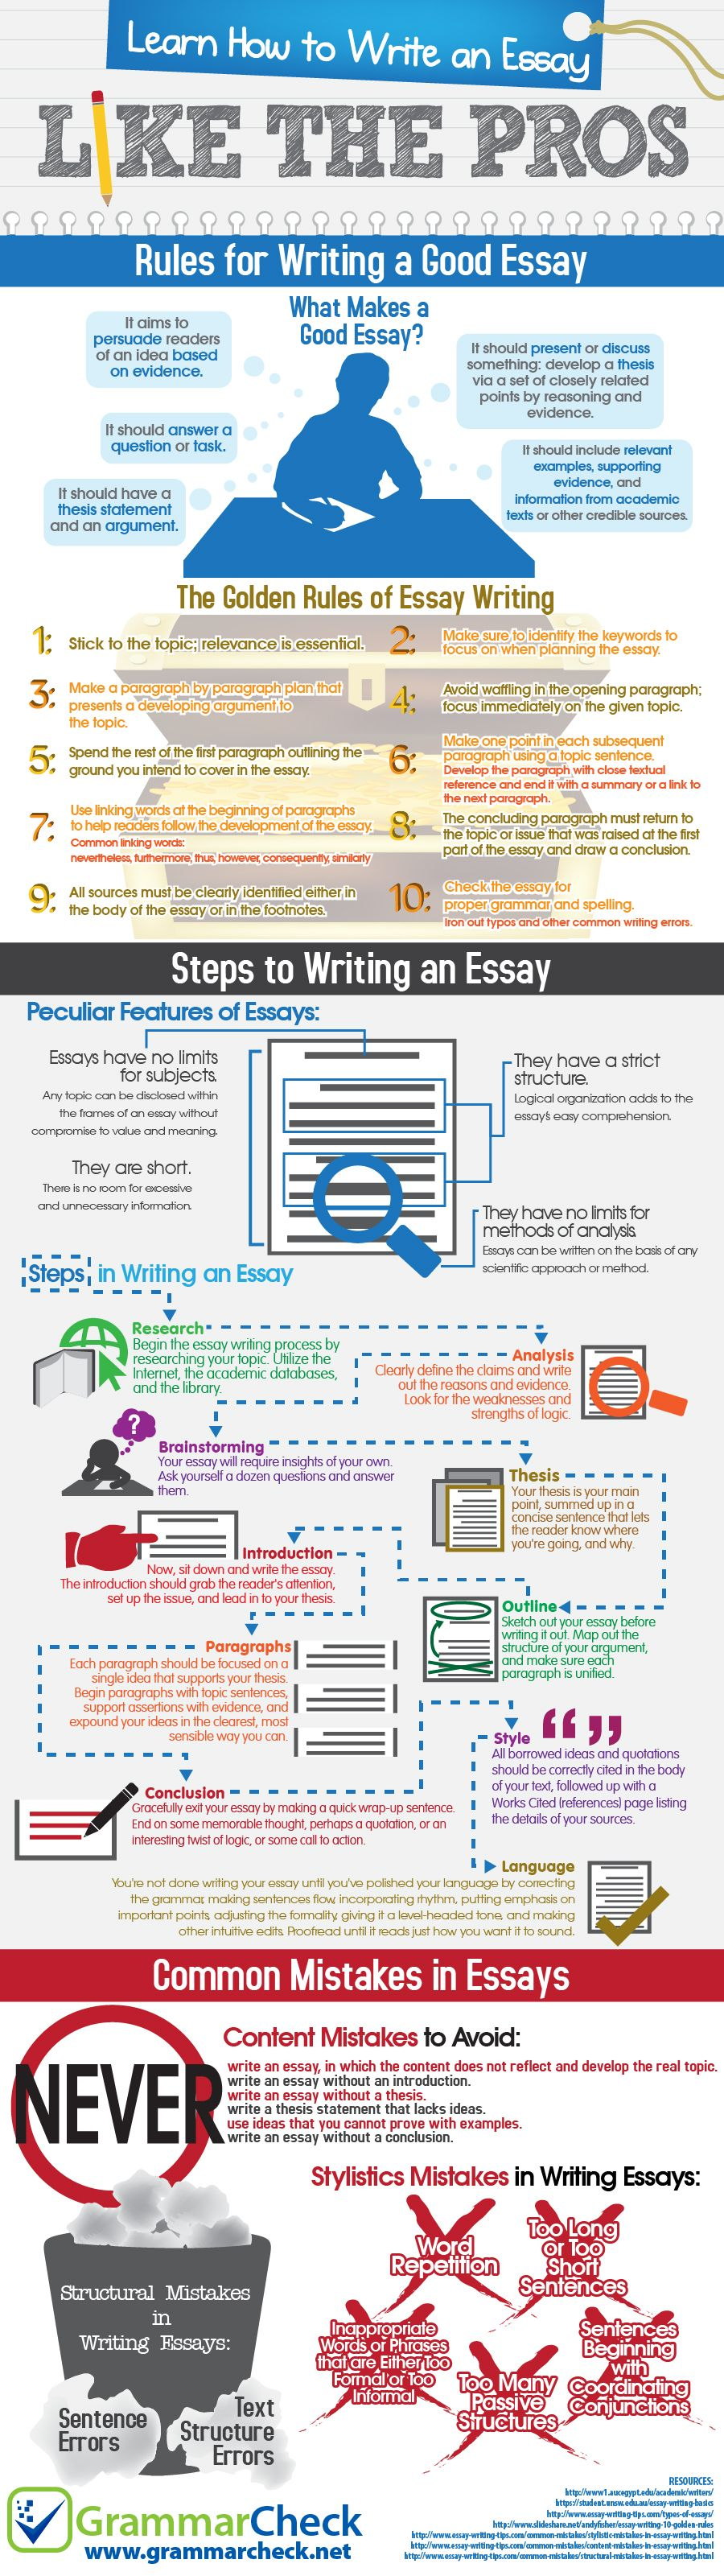 how to write an essay like the pros infographic about writing how to write an essay like the pros infographic